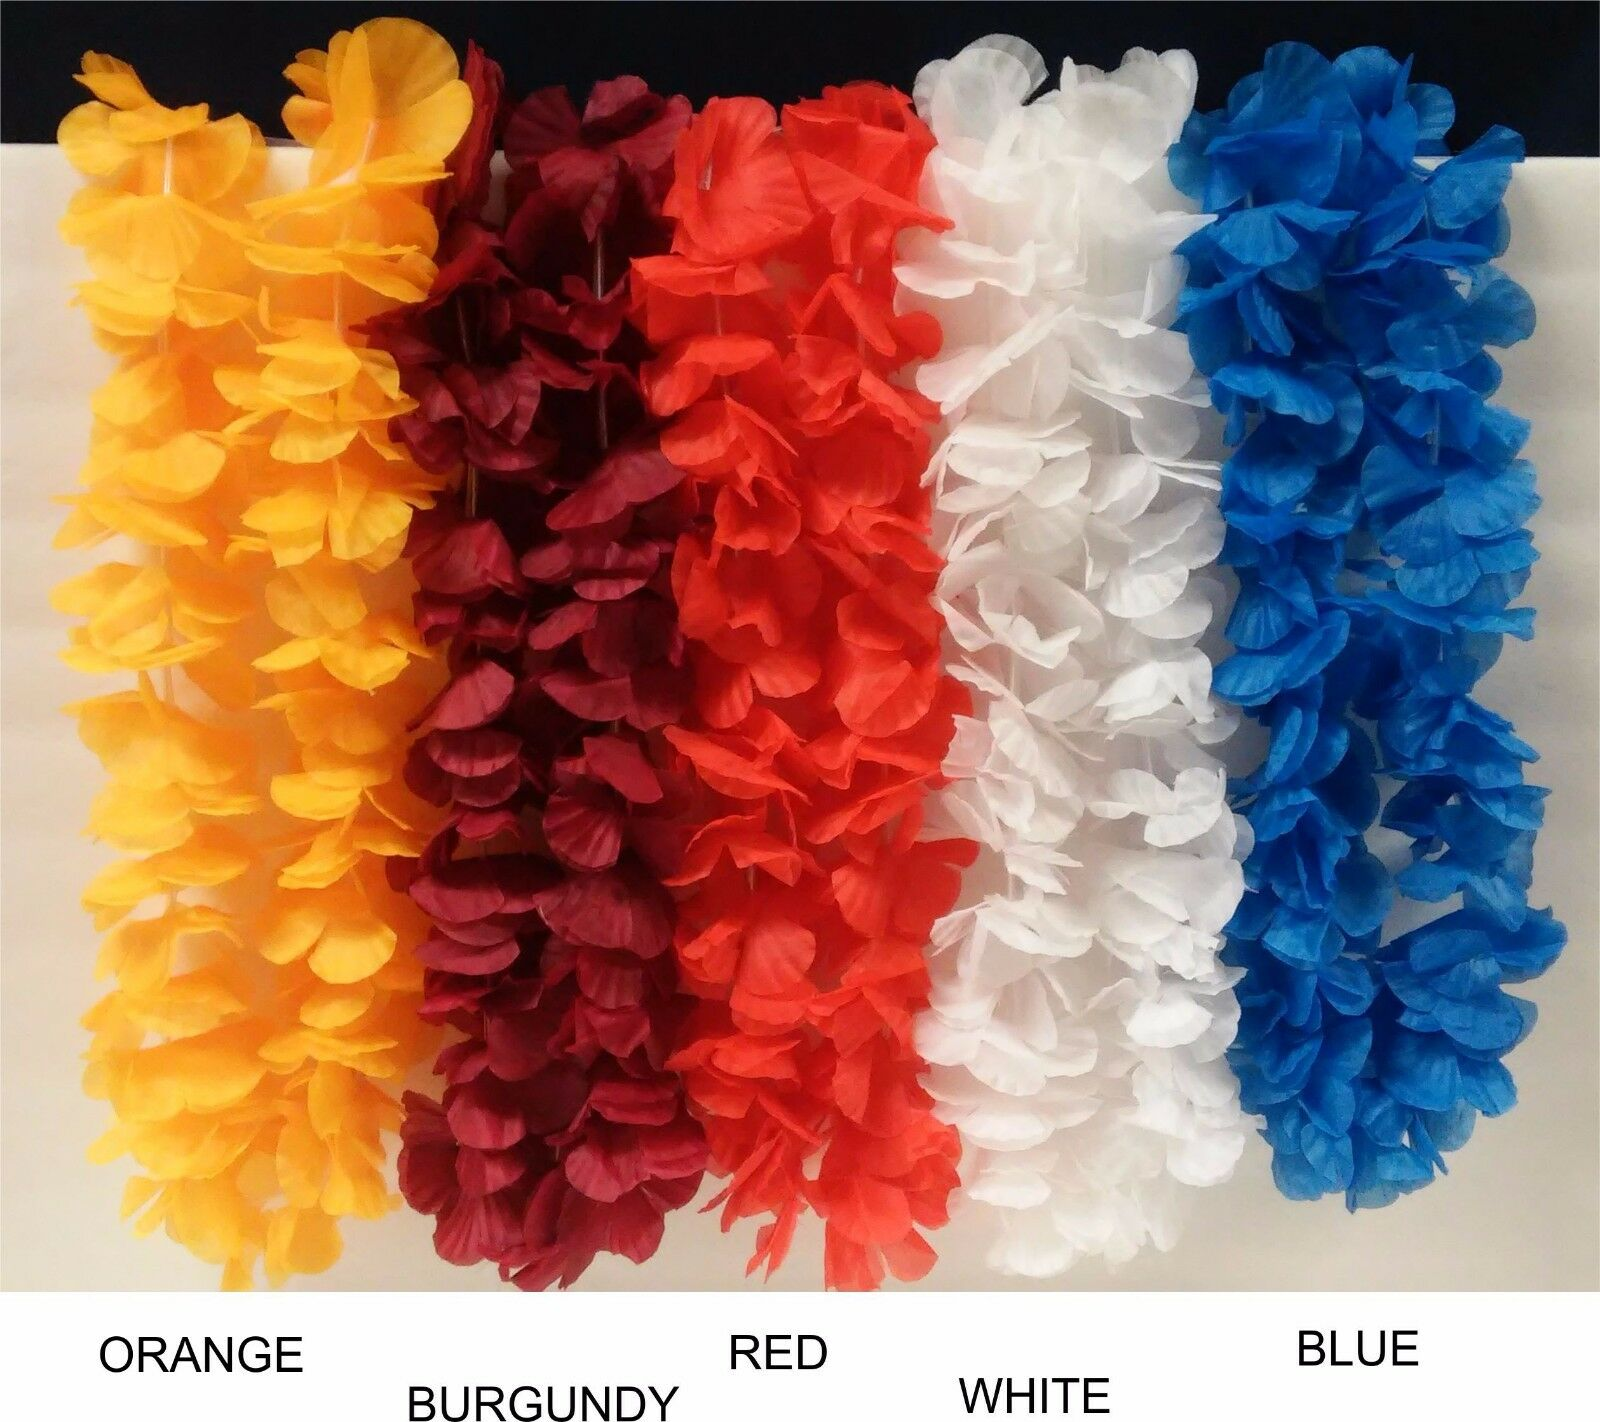 Hawaiian leis jumbo silk flower lei beach tropical wedding party hawaiian leis jumbo silk flower lei beach tropical wedding party favor hula 7 3b 1 of 6 hawaiian leis jumbo silk flower mightylinksfo